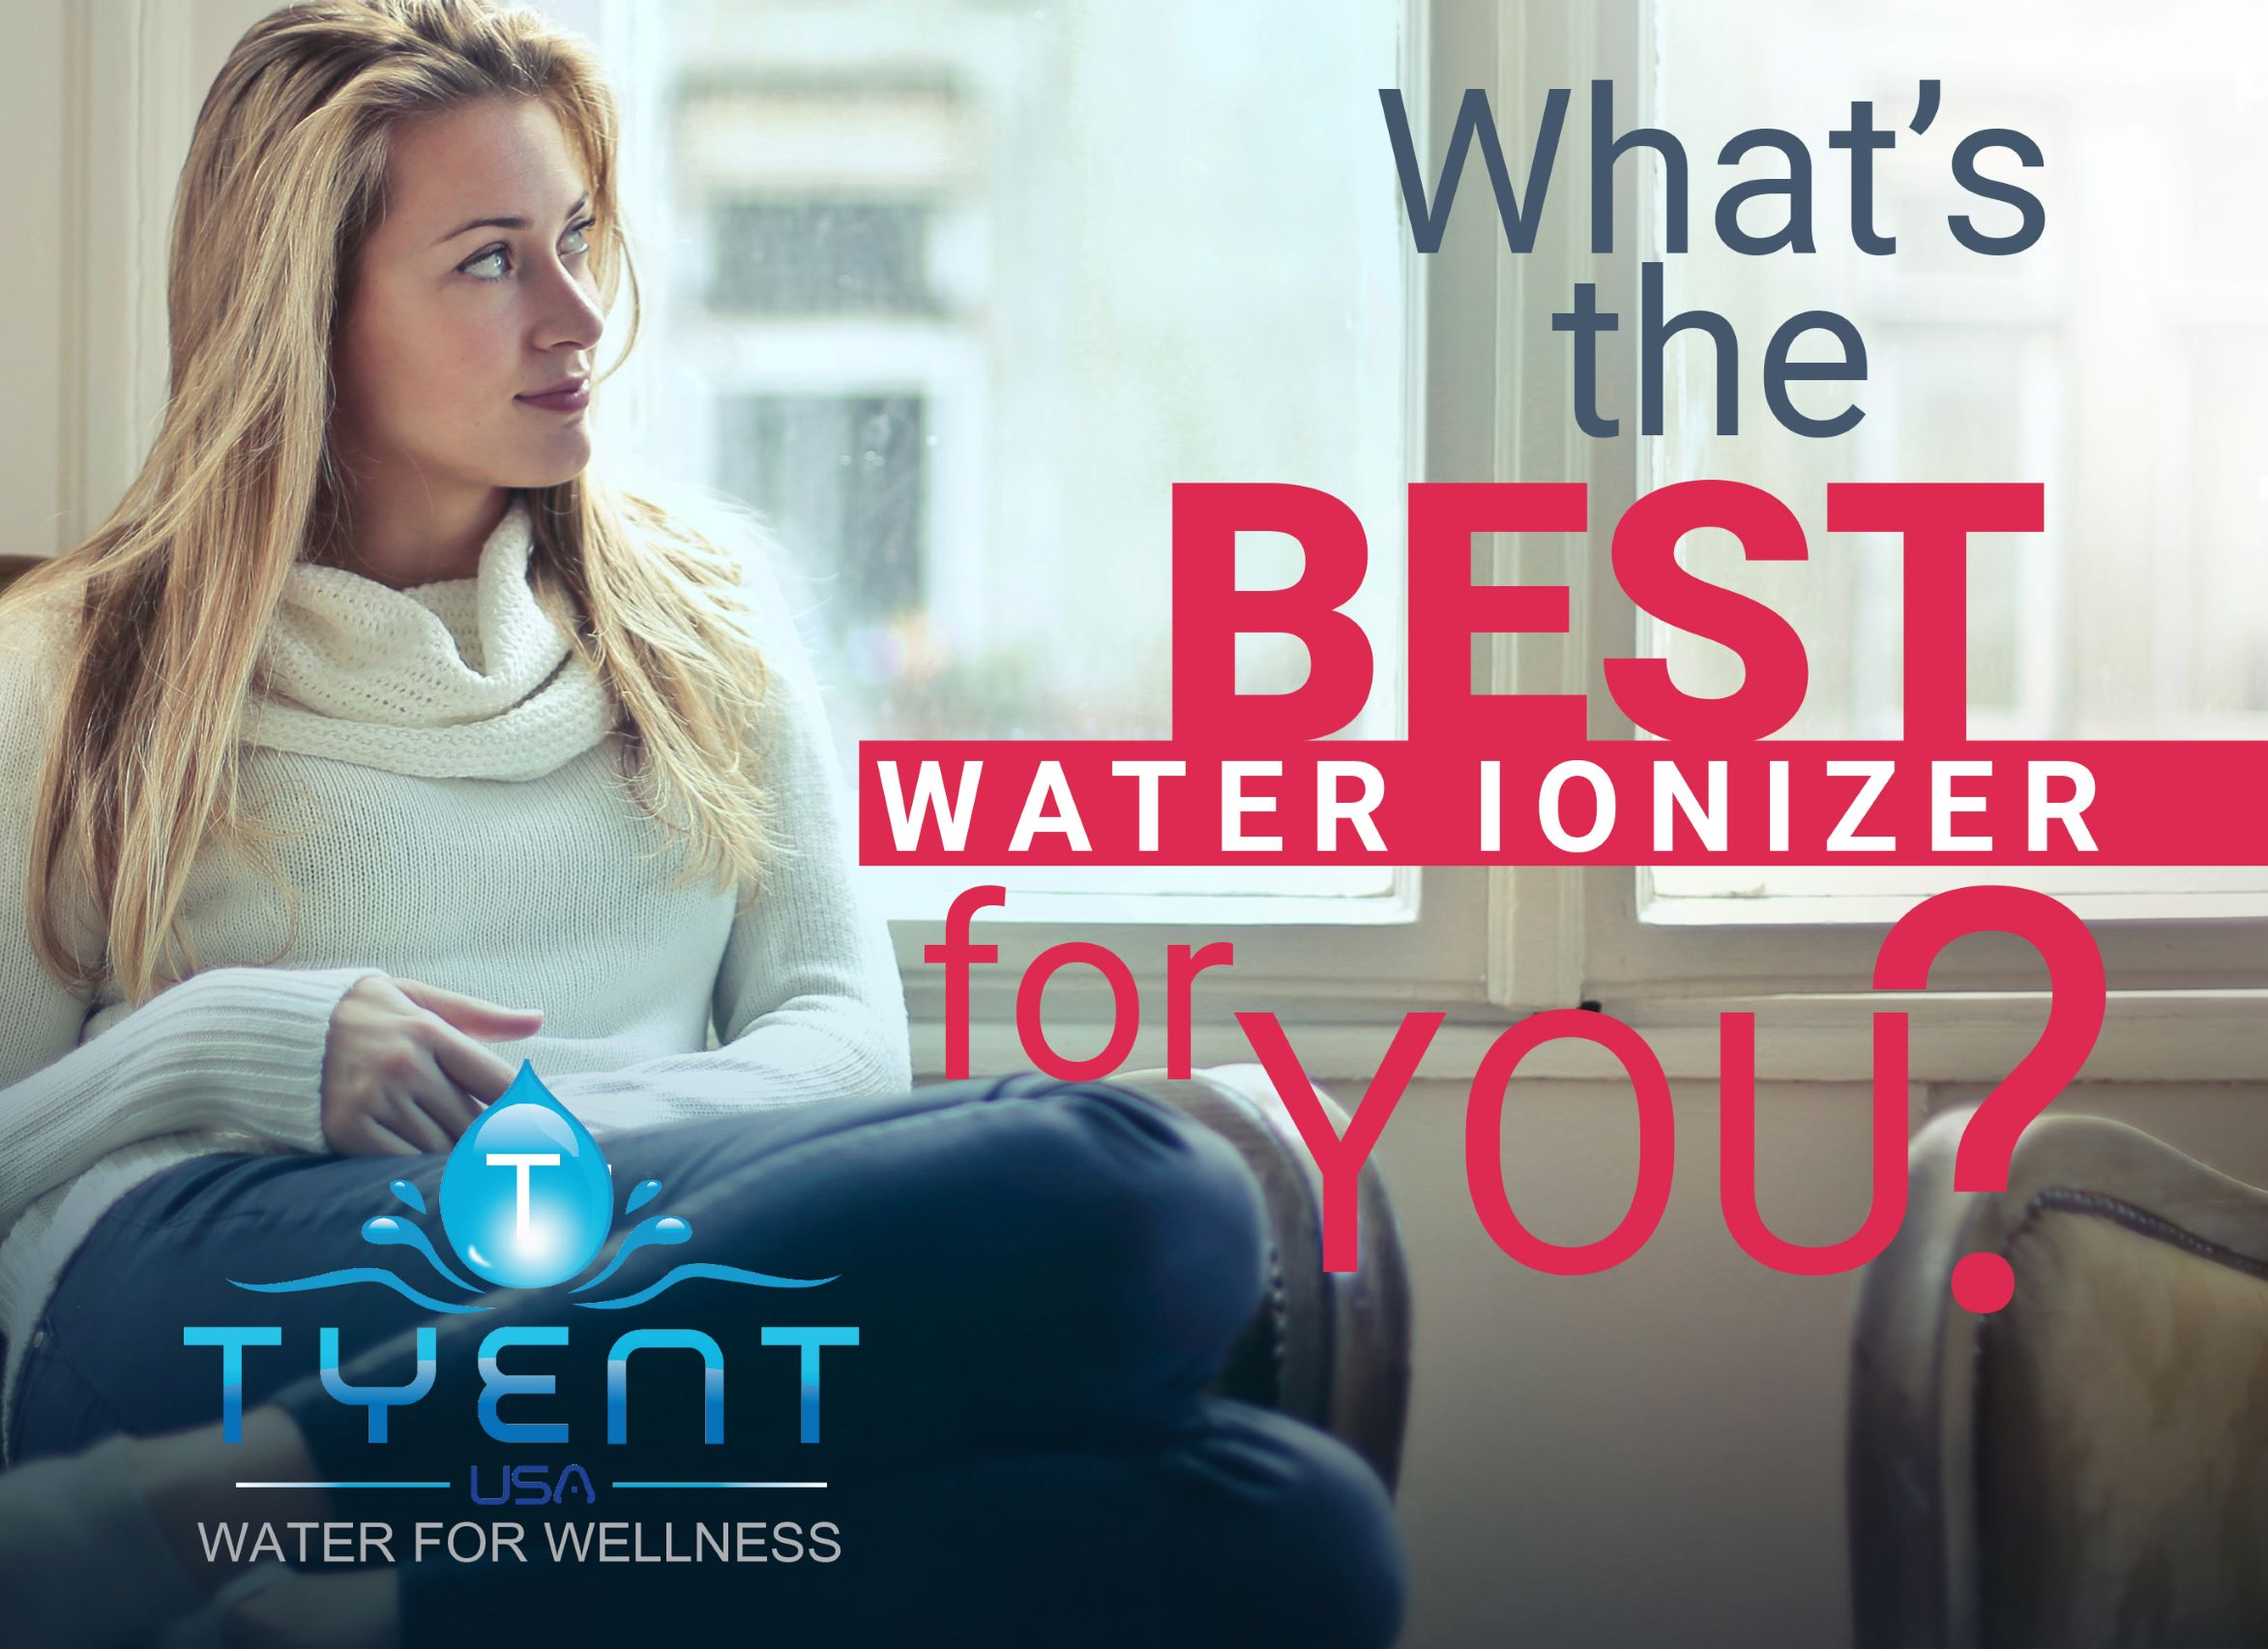 What's the Best Water Ionizer for You